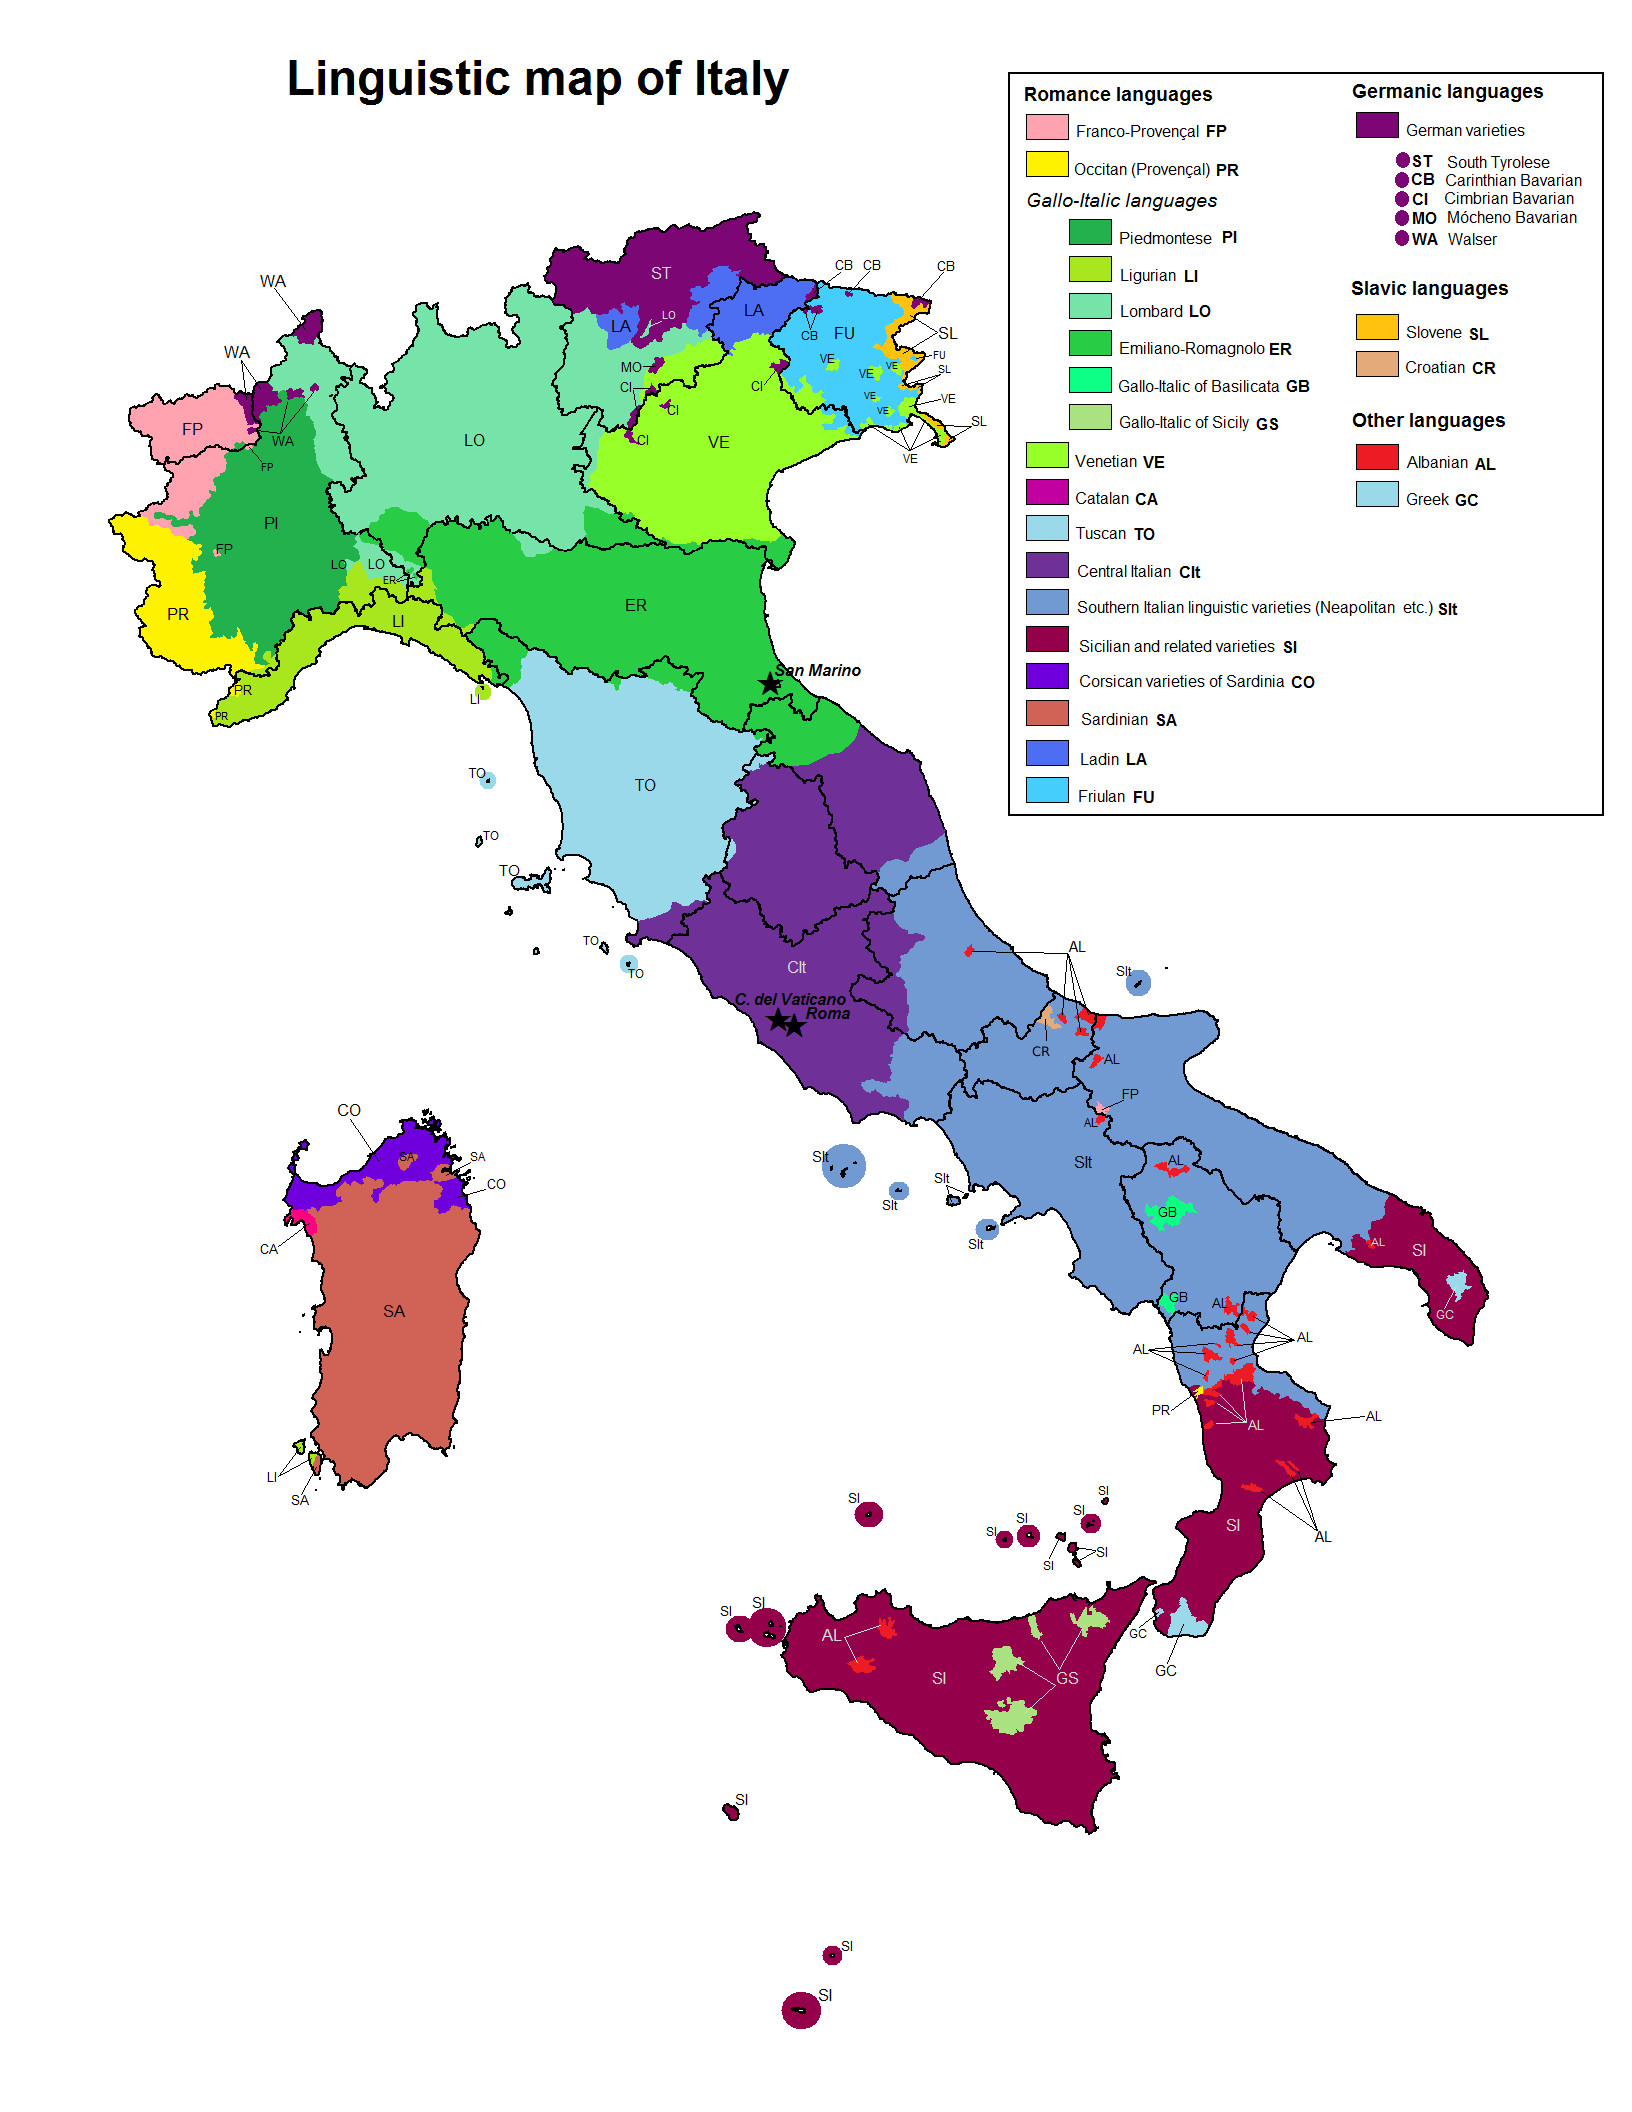 A Printable Map Of Italy Luxury Linguistic Map Of Italy Maps Pinterest